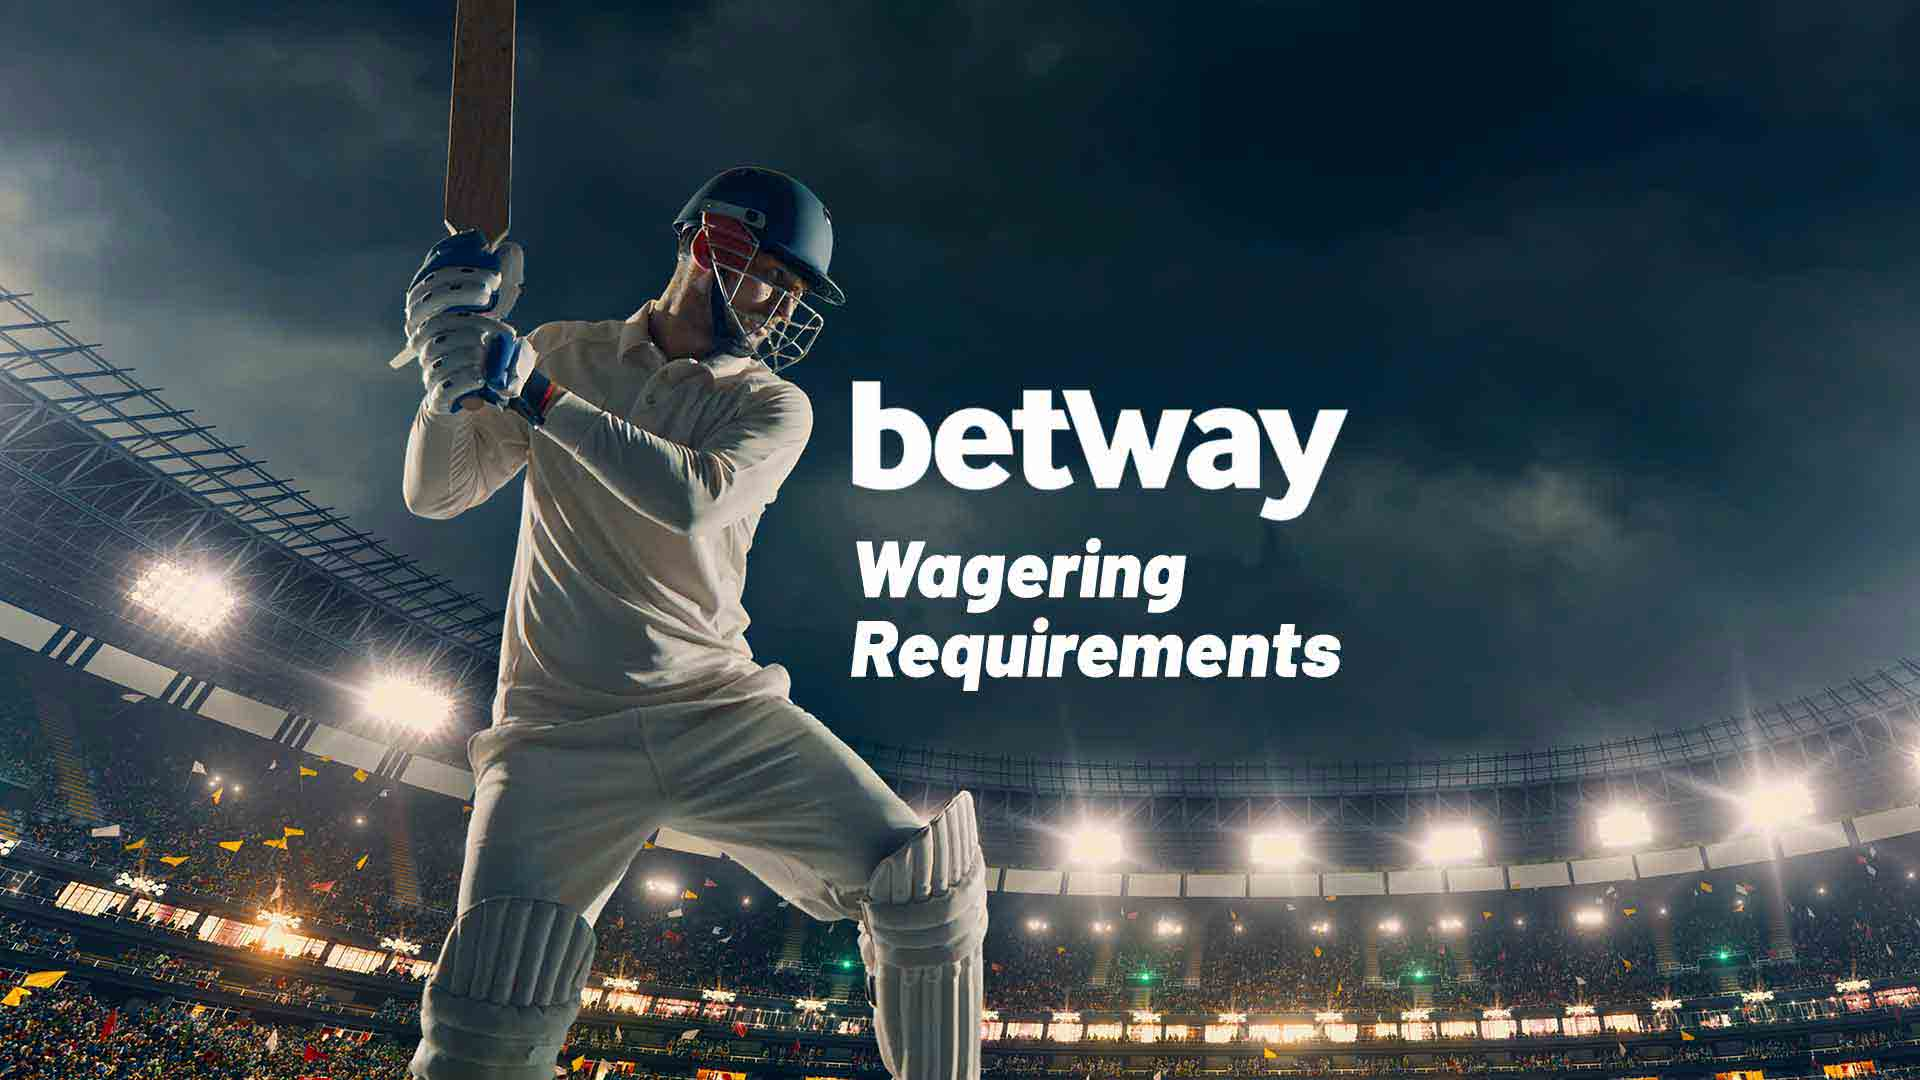 betway wagering requirements